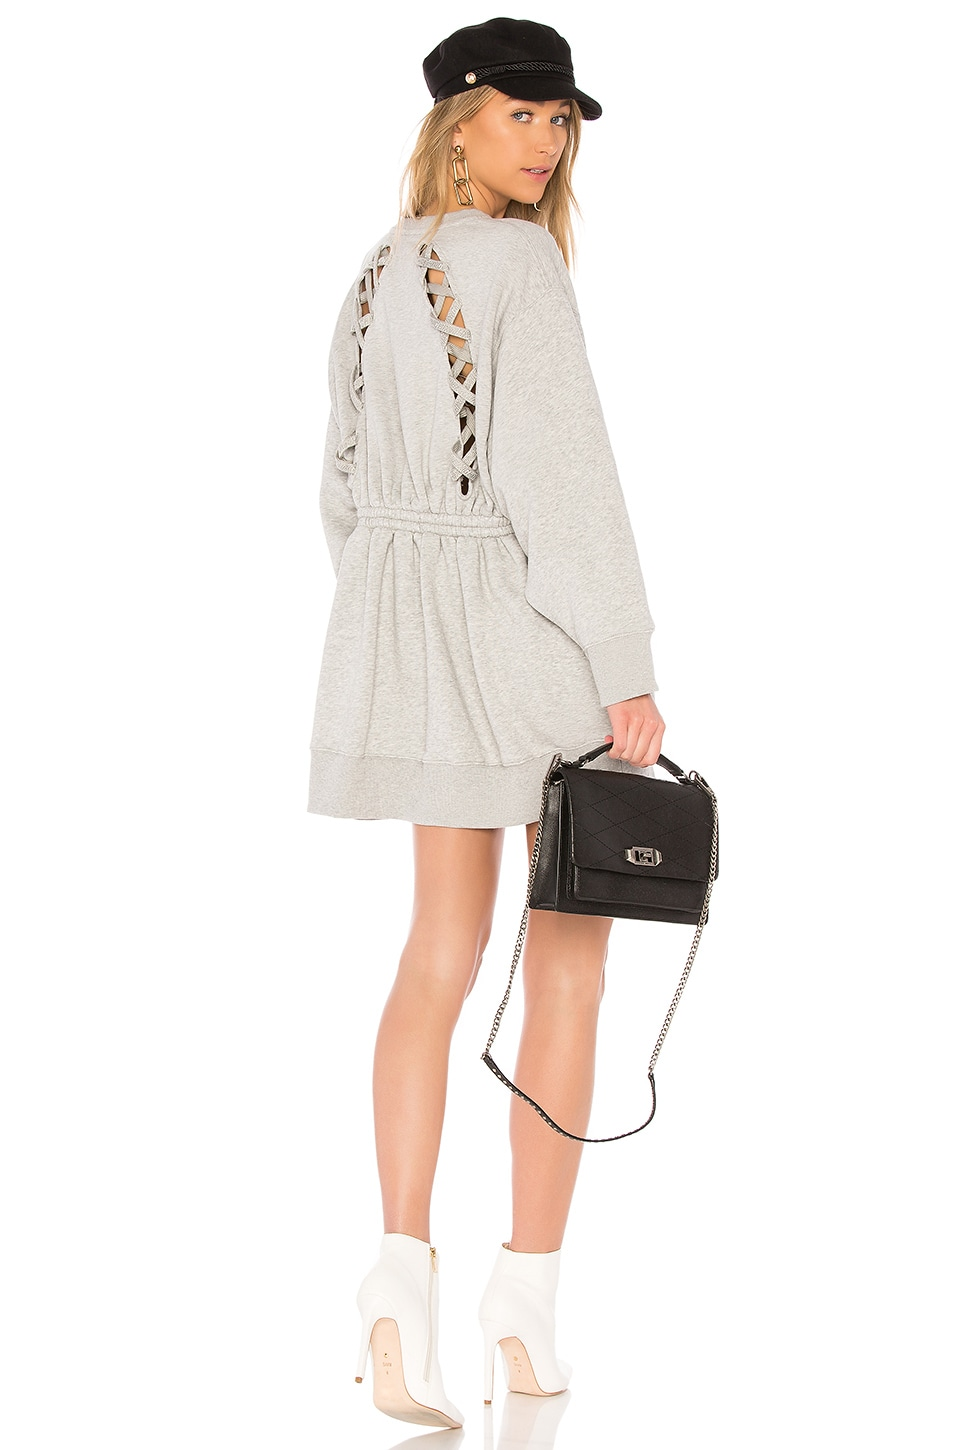 40707da4 TOMMY X GIGI Gigi Hadid Open Back LS Sweatshirt Dress